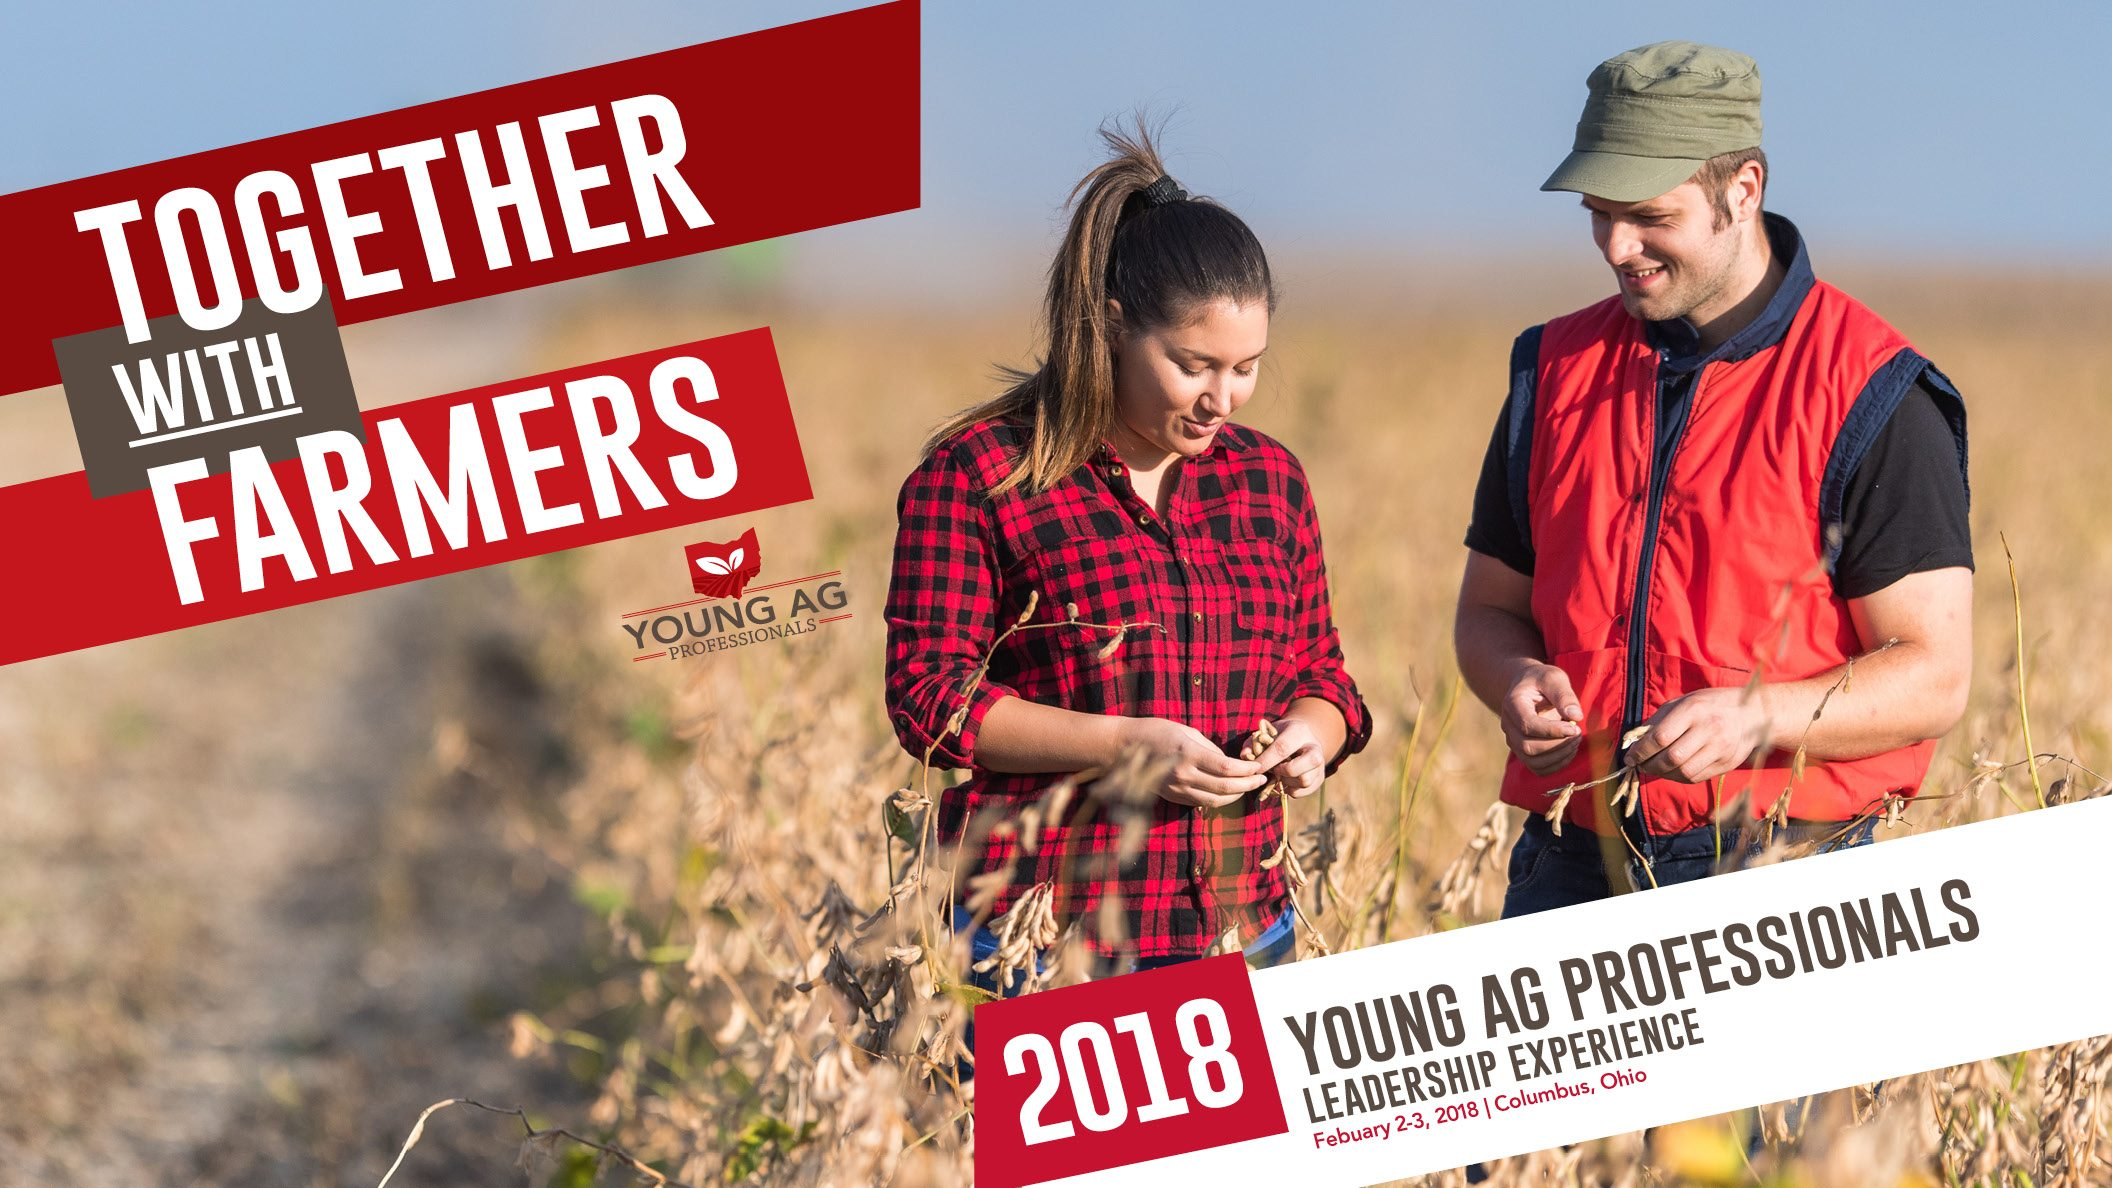 Young Ag Professionals Leadership Experience